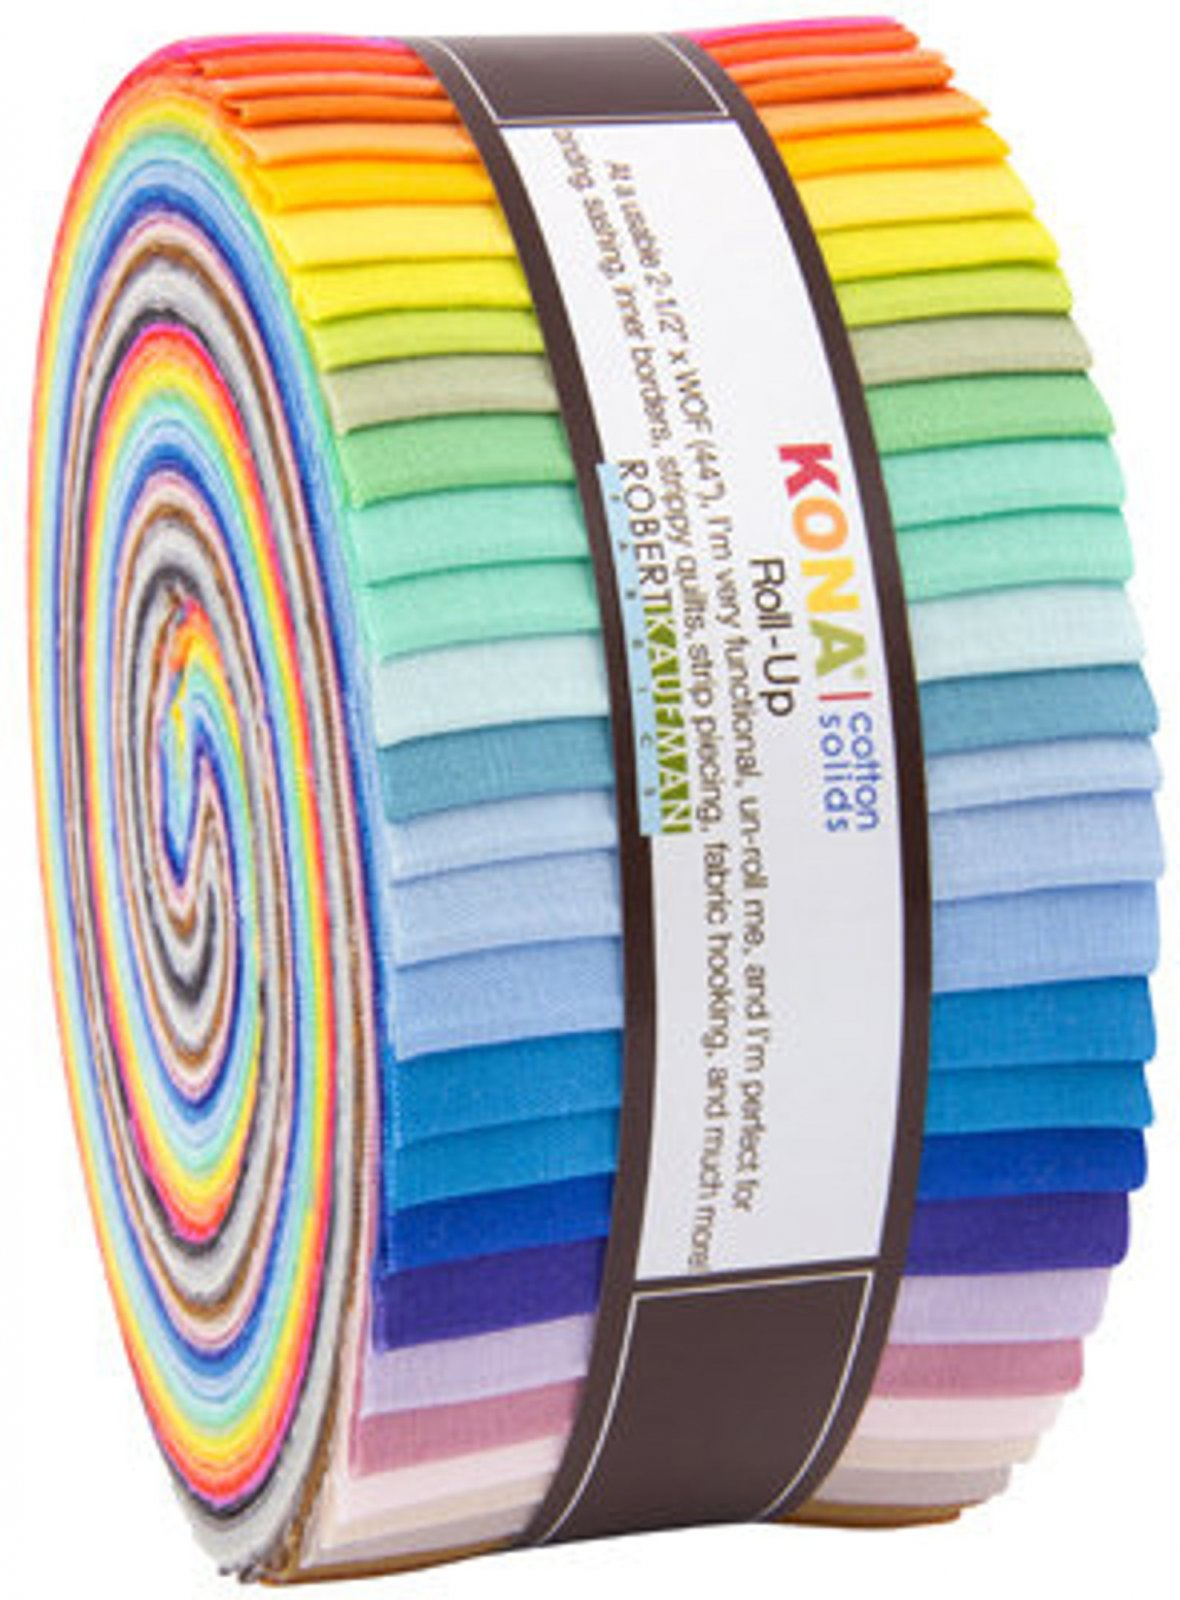 2 1/2 strips Roll Up Kona Cotton, 2014 New Colors, 40 pieces